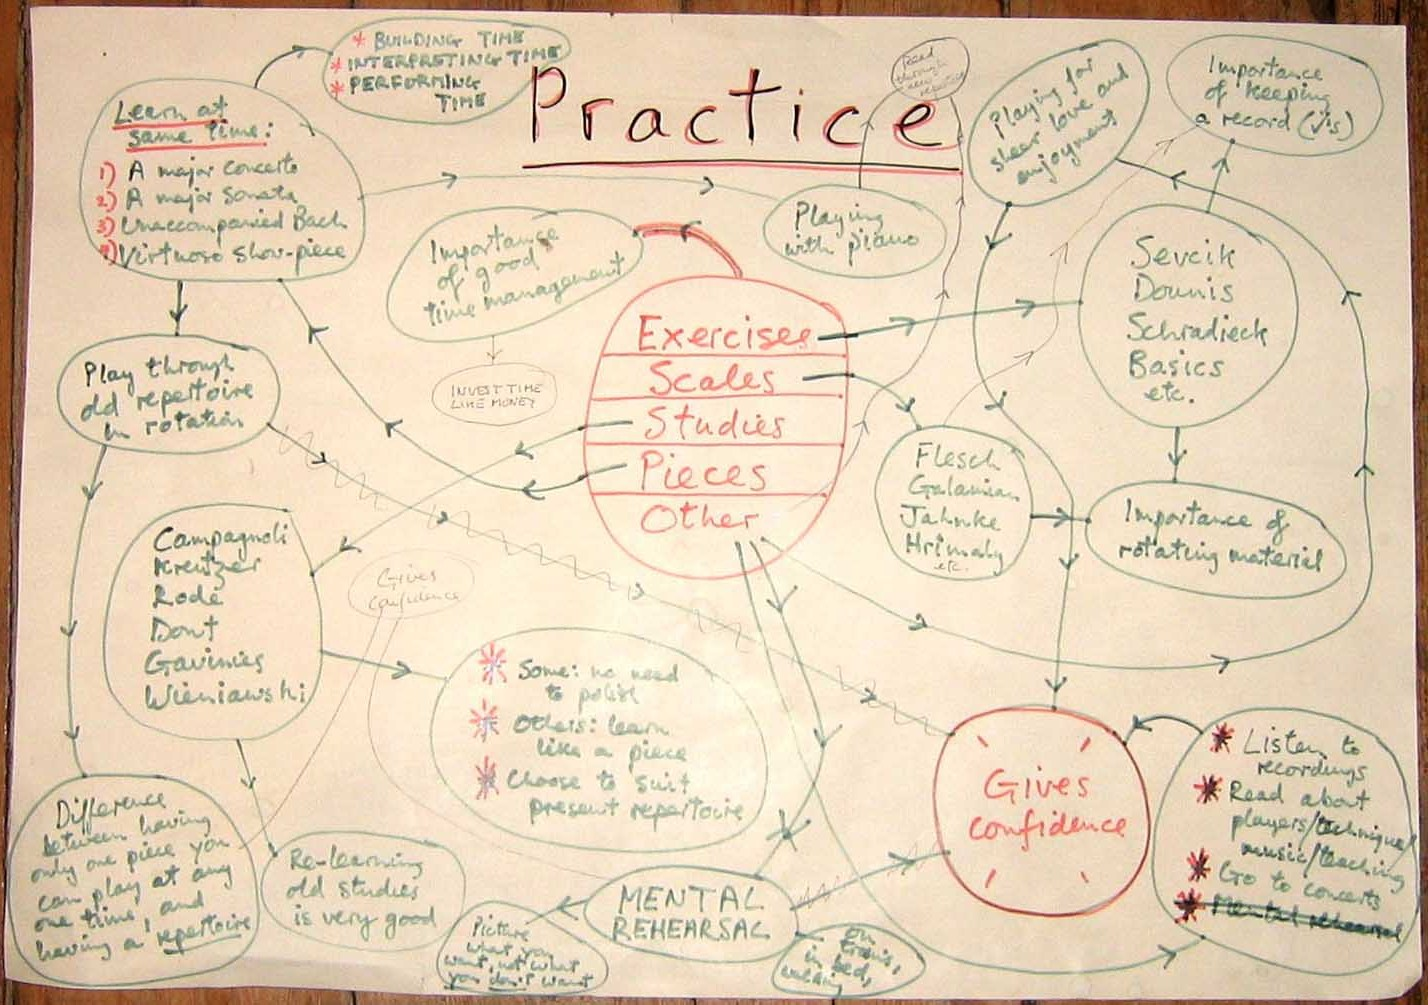 Simon Fischer's Mind Map - Click to Enlarge